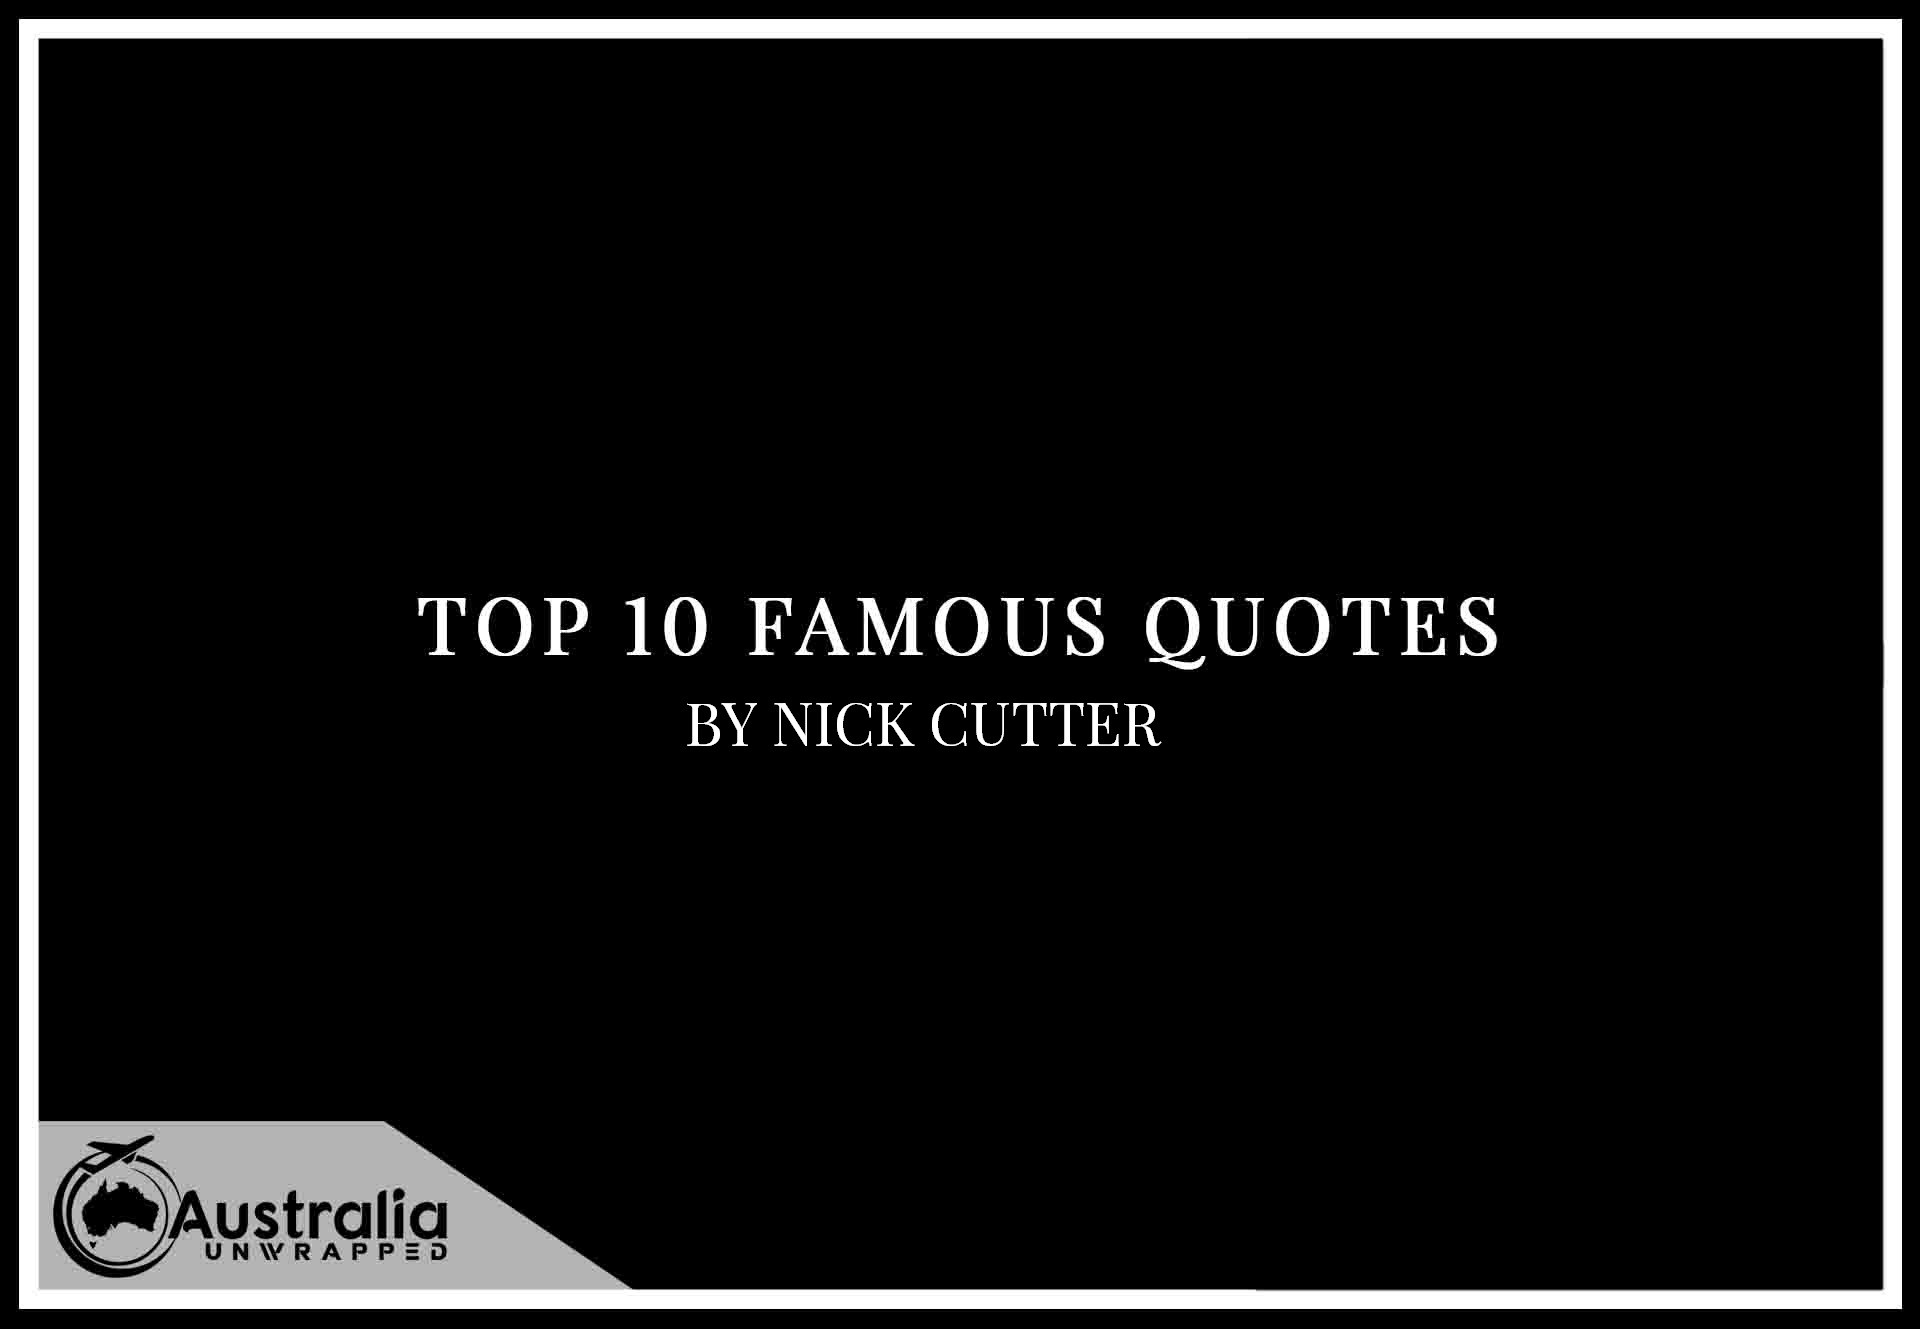 Top 10 Famous Quotes by Author Nick Cutter